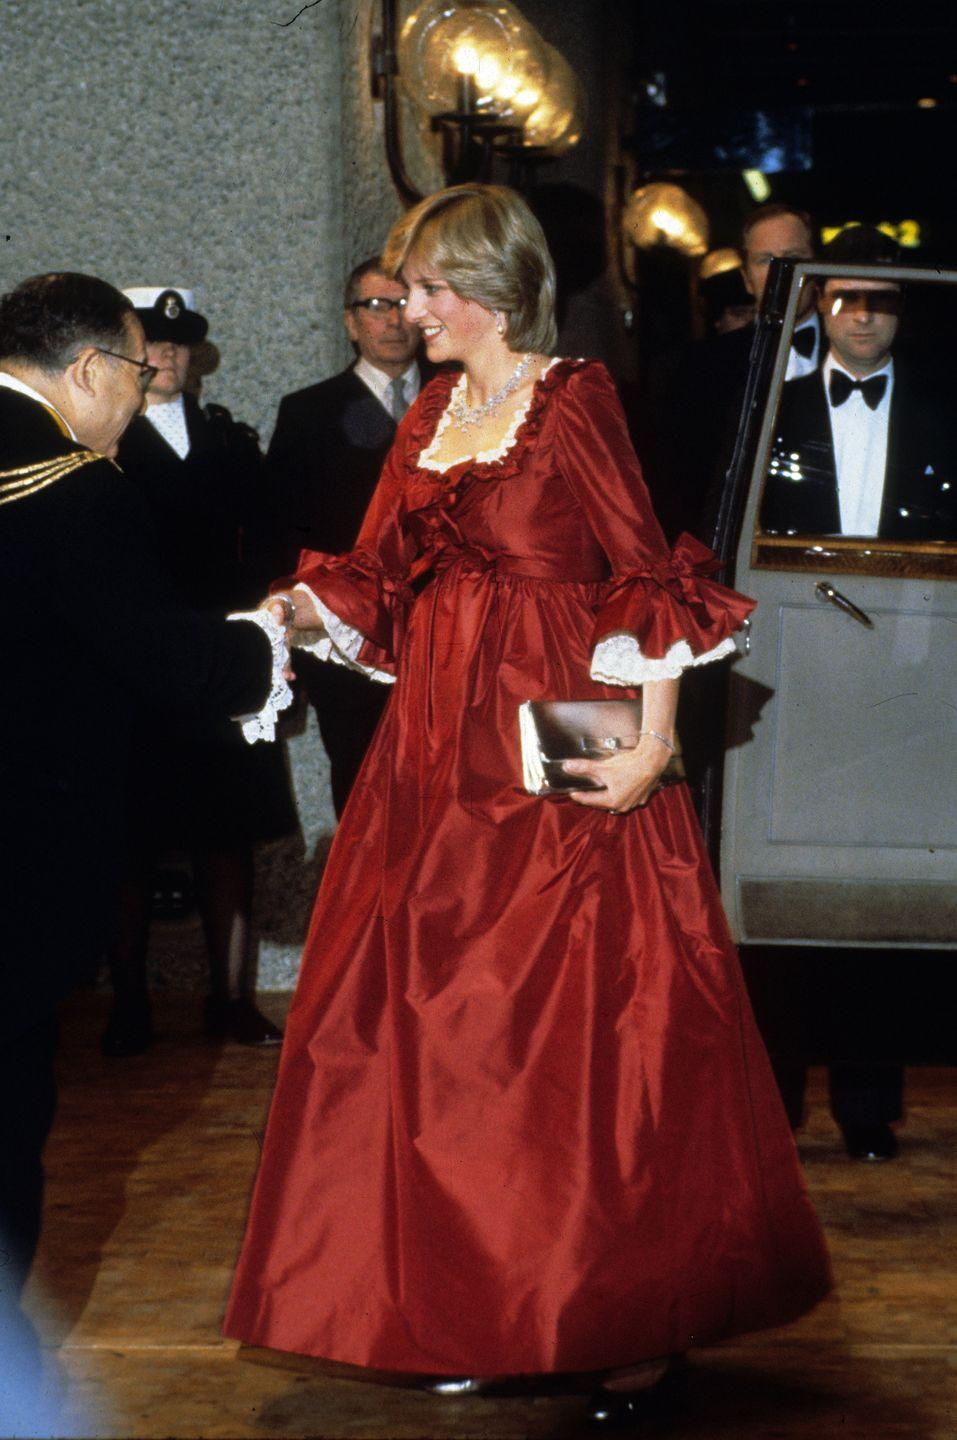 <p>The 1980s was the decade in which royal maternity wear took a more fashionable turn. Later in her pregnancy with Prince William, Princess Diana turned heads with an empire-waist red taffeta evening gown. The design was specially made into a maternity dress by the designer David Sassoon. </p>